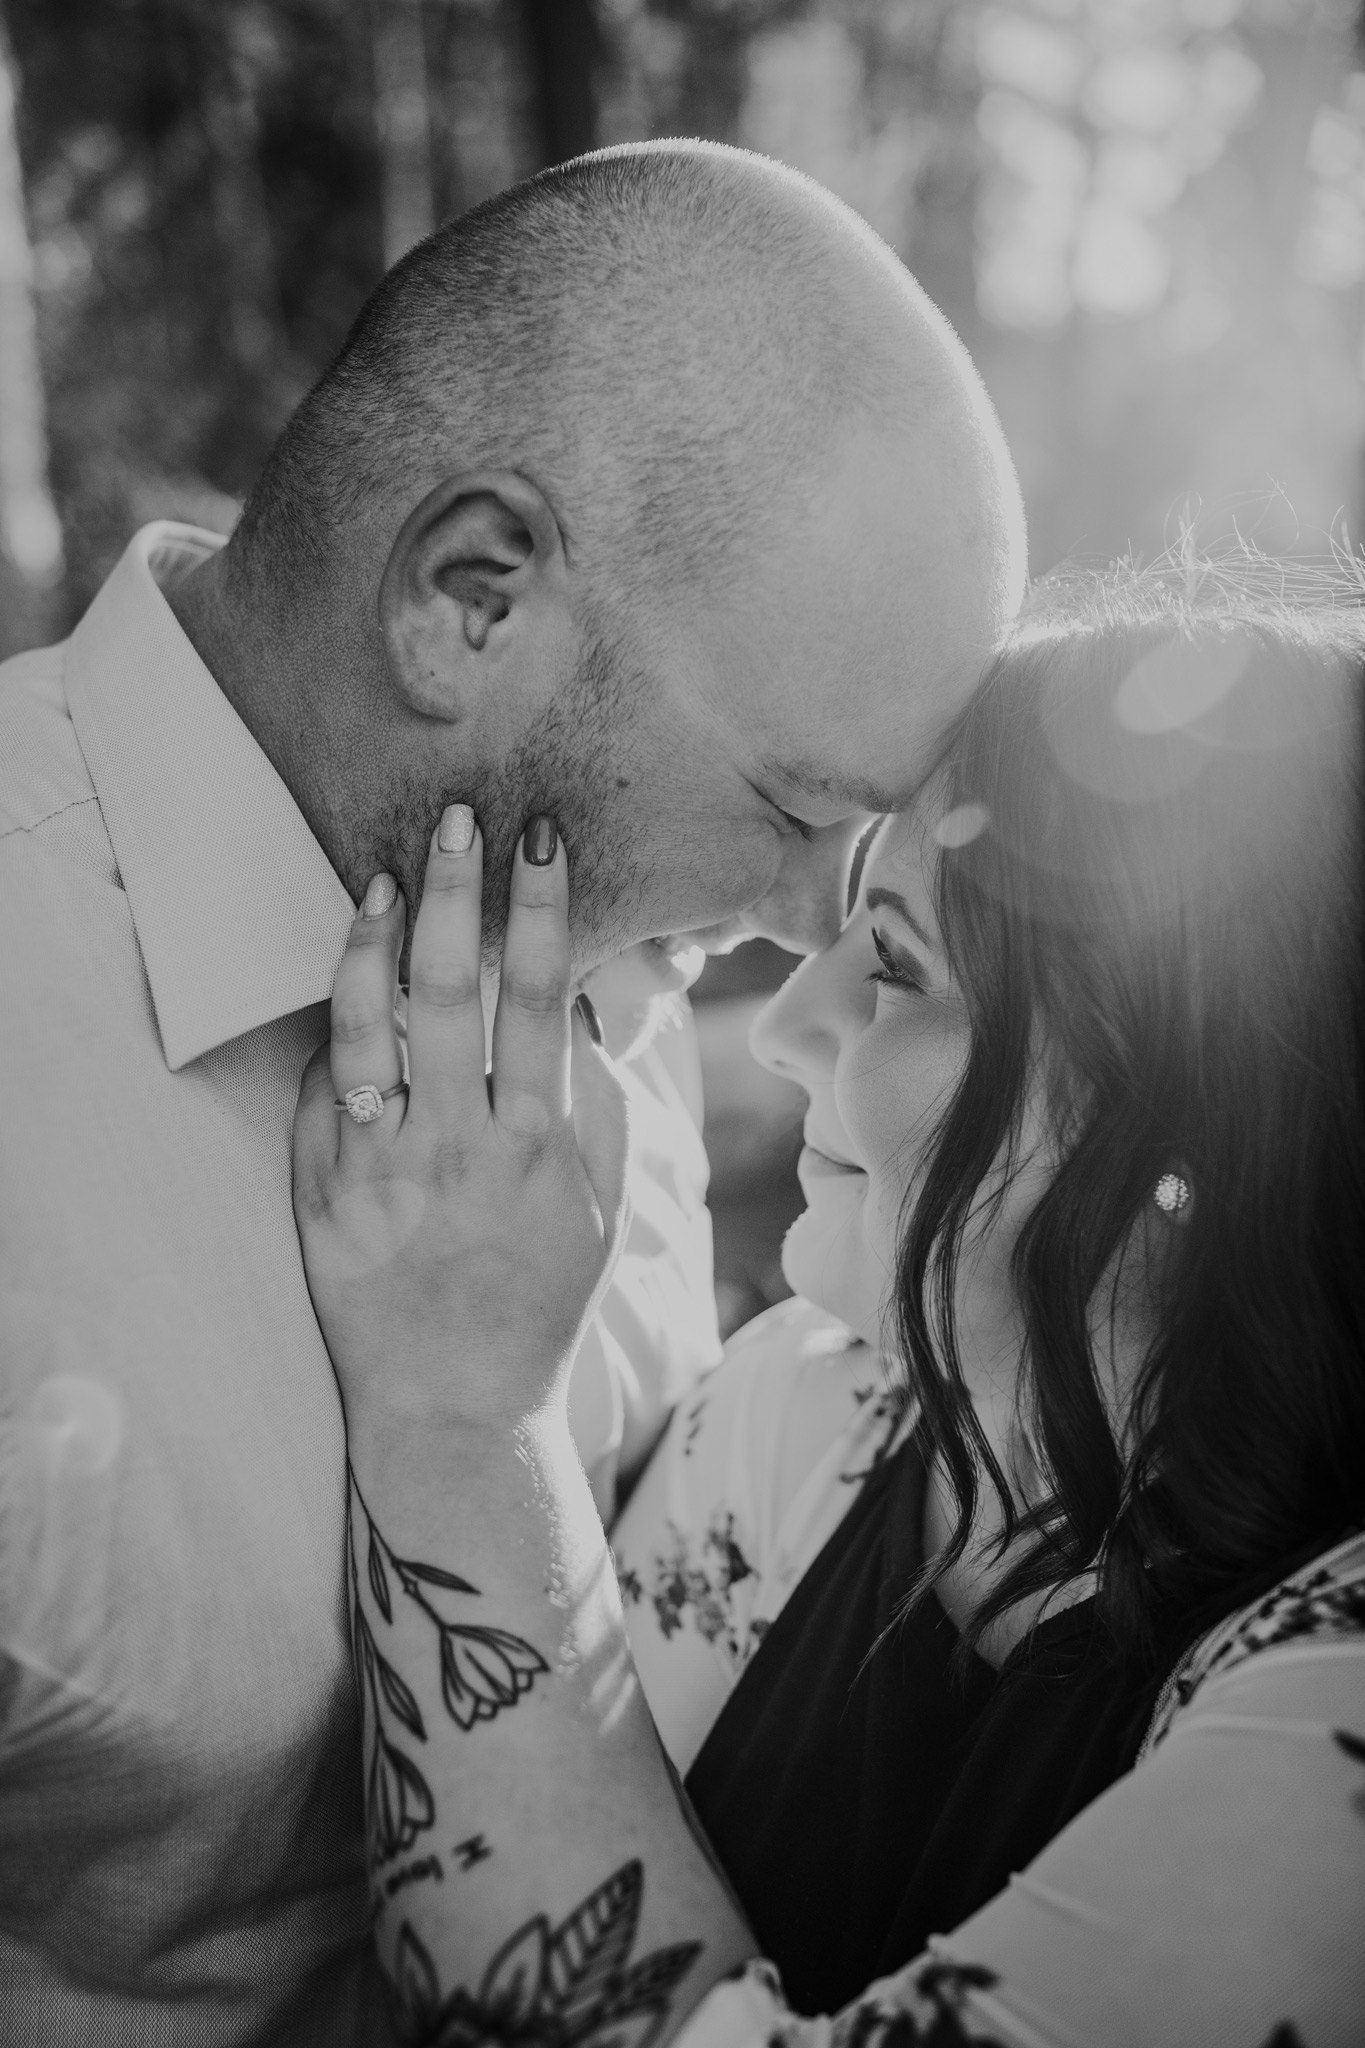 woman touches fiancé's face with ring hand romantic photo